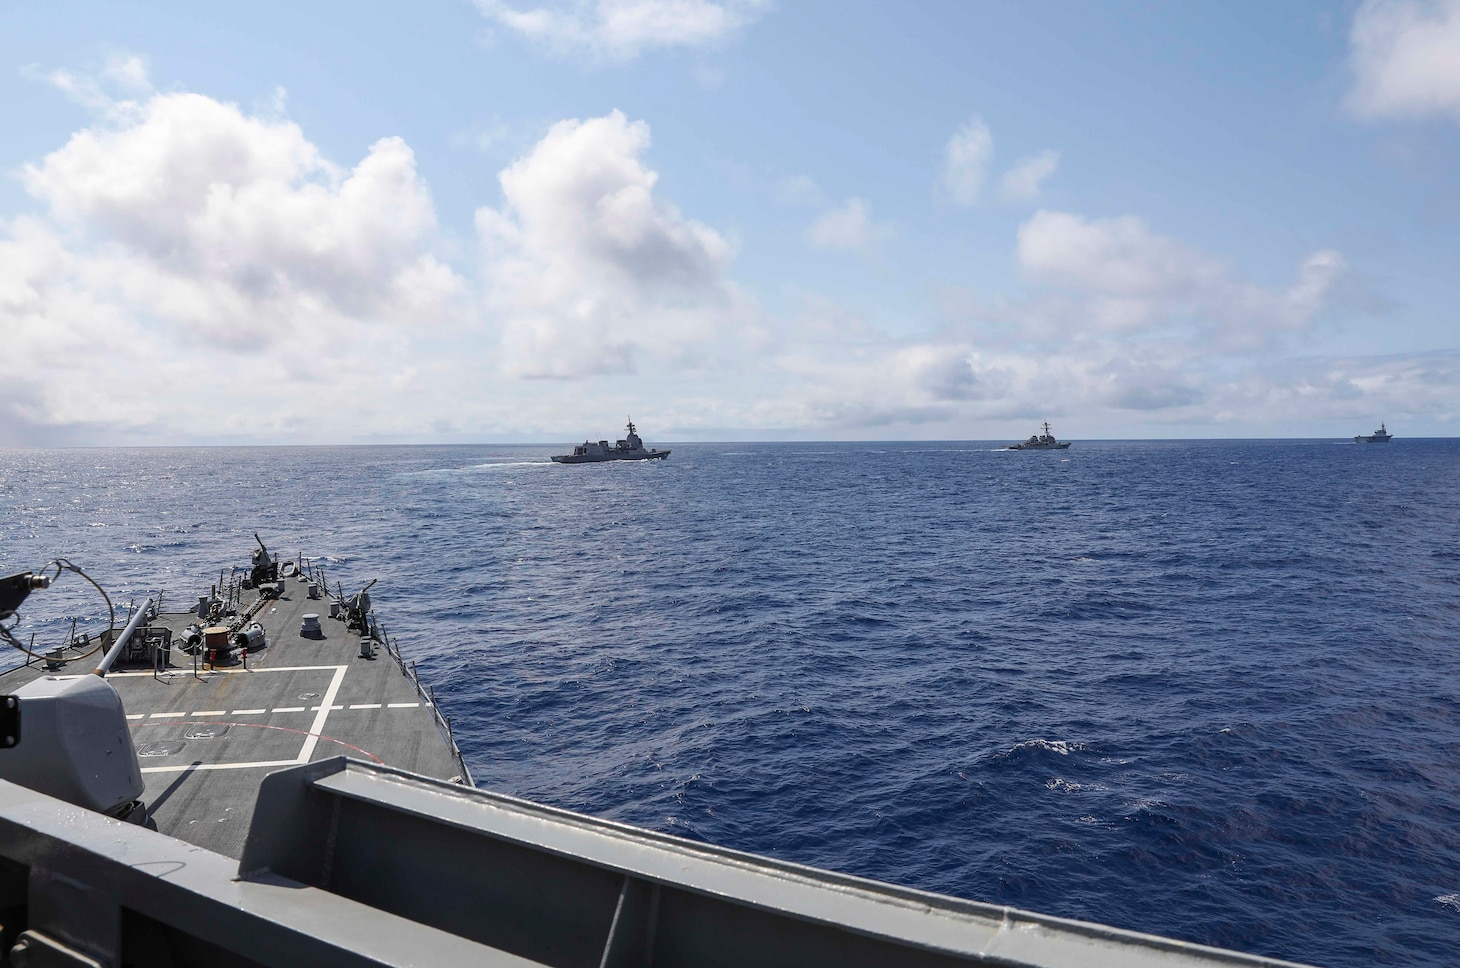 USS Benfold (DDG 65) and USS John S. McCain (DDG 56) sail in formation with the Japan Maritime Self-Defense Force guided-missile destroyer JS Shiranui (DDG 120) and helicopter destroyer JS Ise (DDH 182) during the annual U.S.-Japan Bilateral Advanced Warfighting Training Exercise.